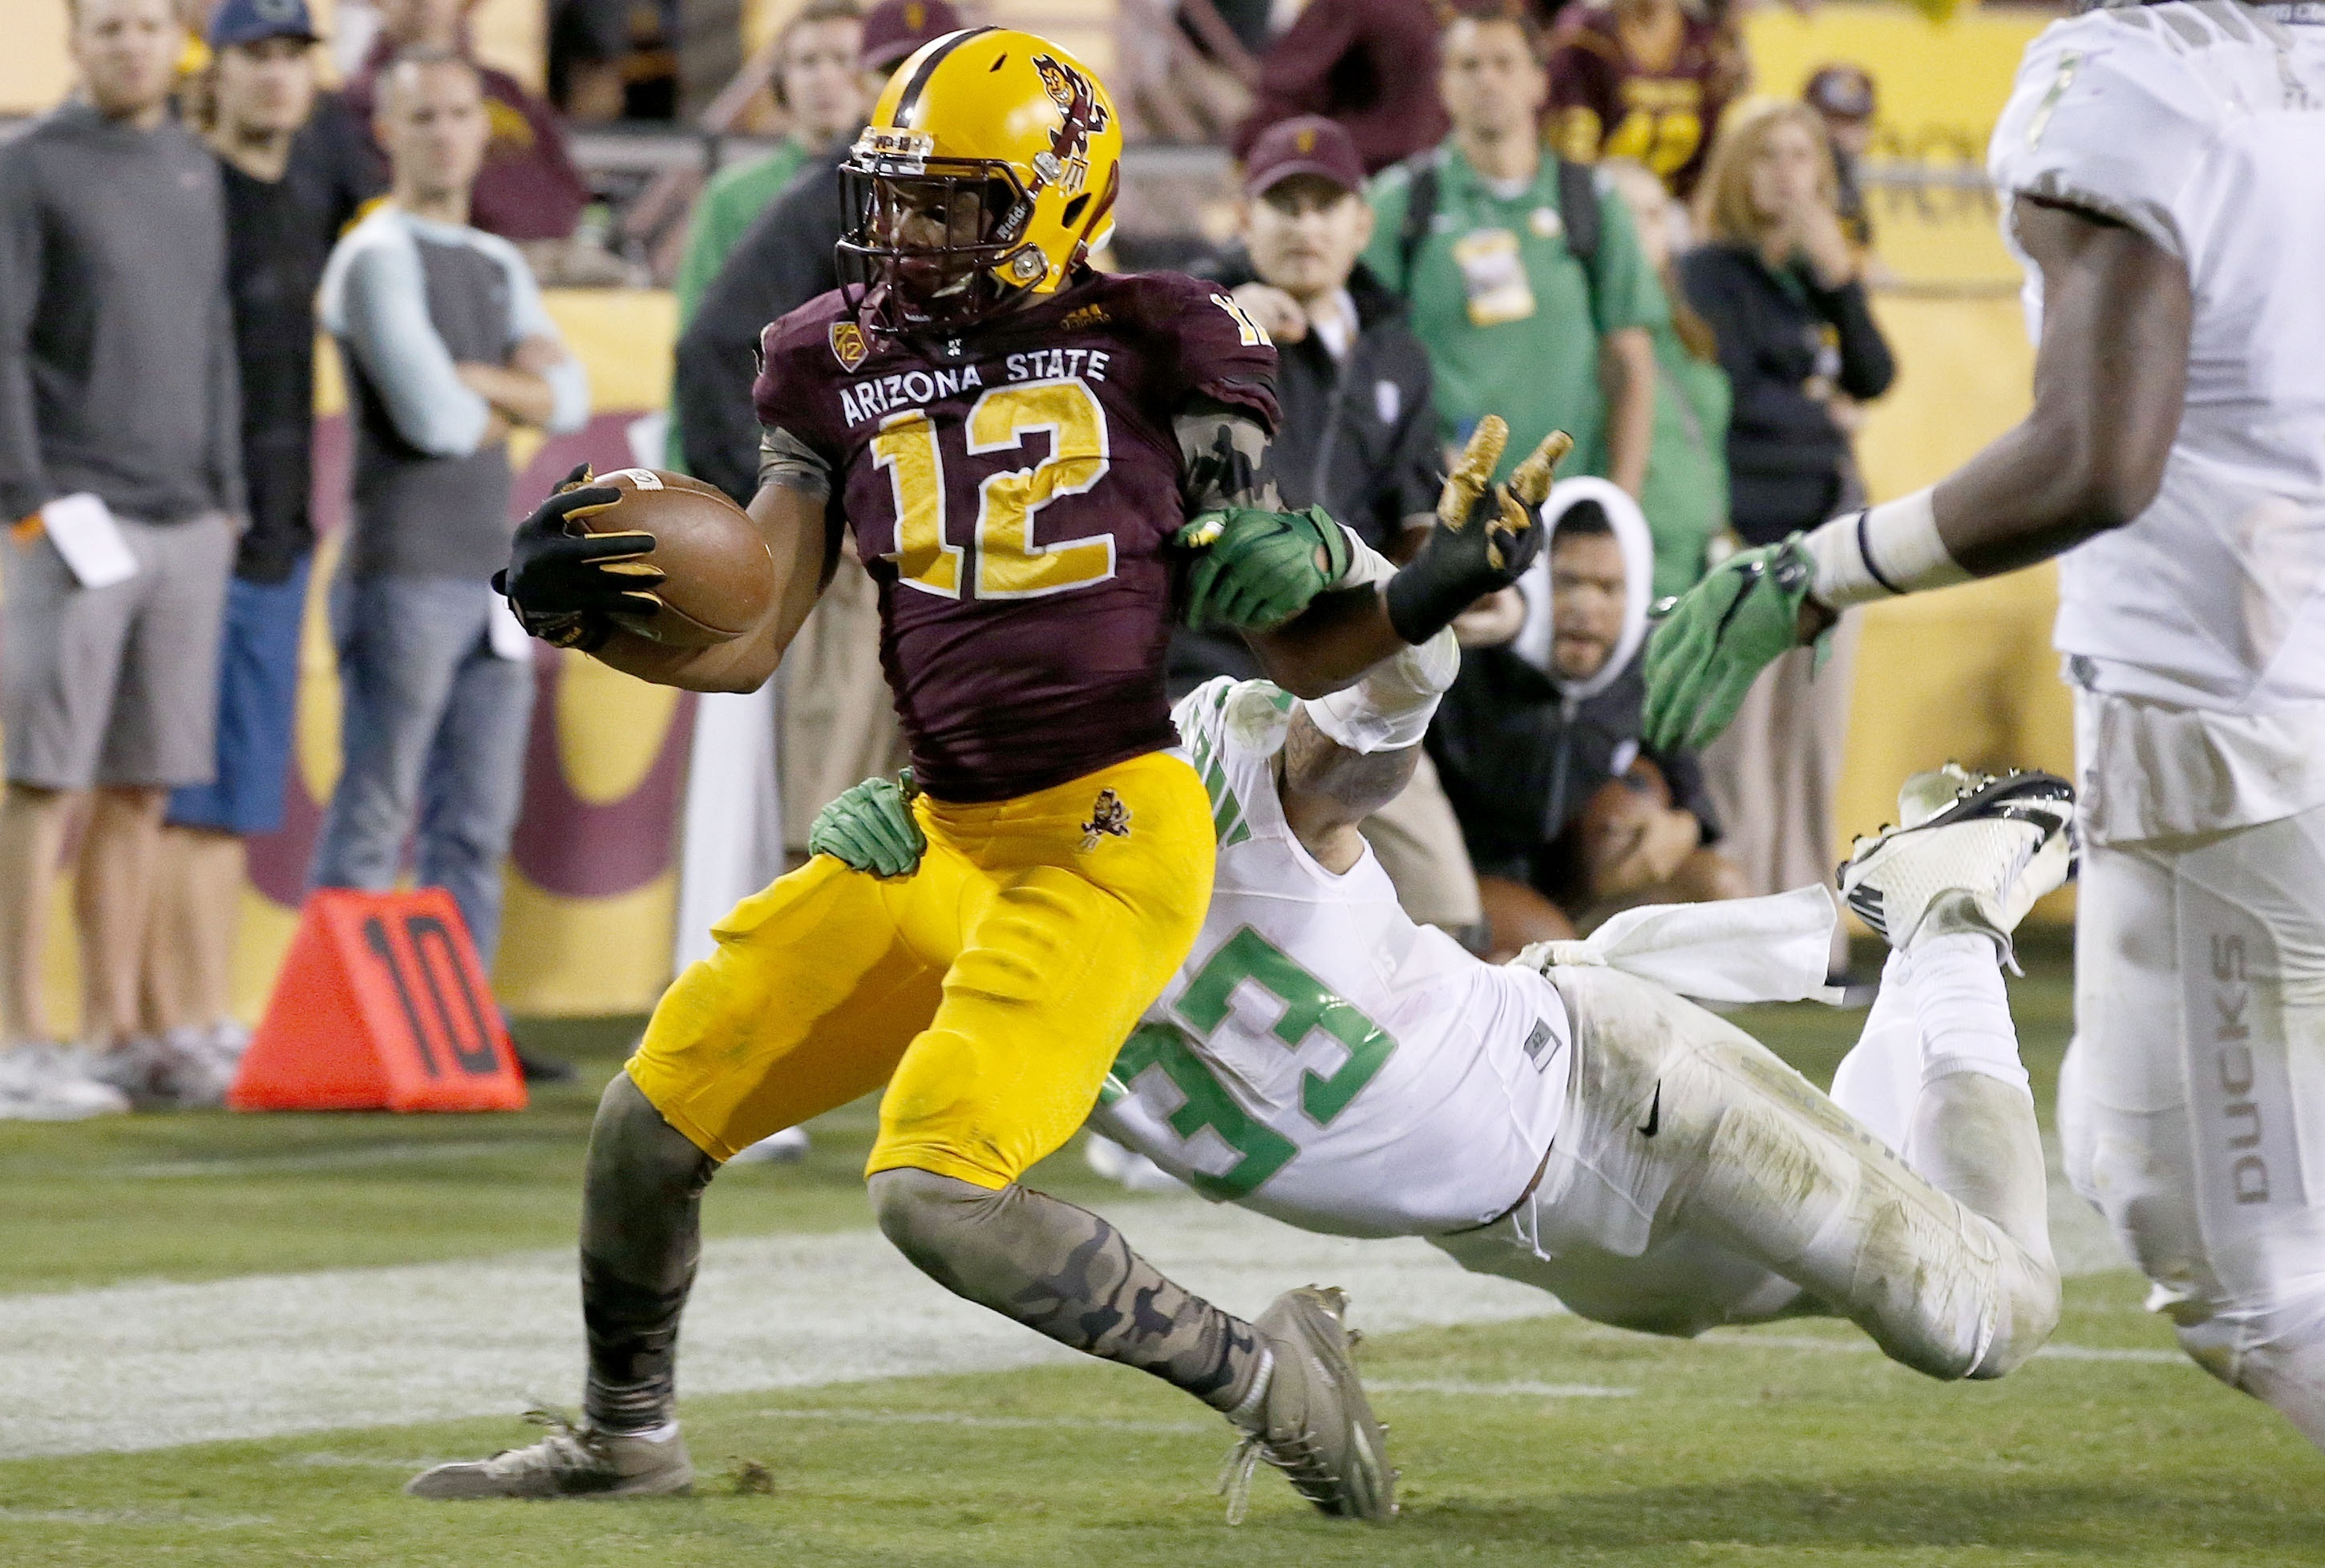 FILE - In this Oct. 29, 2015, file photo, Arizona State's Tim White (12) is able to shed the tackle of Oregon's Tyson Coleman (33) just enough to get into the end zone for a touchdown during overtime of an NCAA college football game in Tempe, Ariz. ASU ho